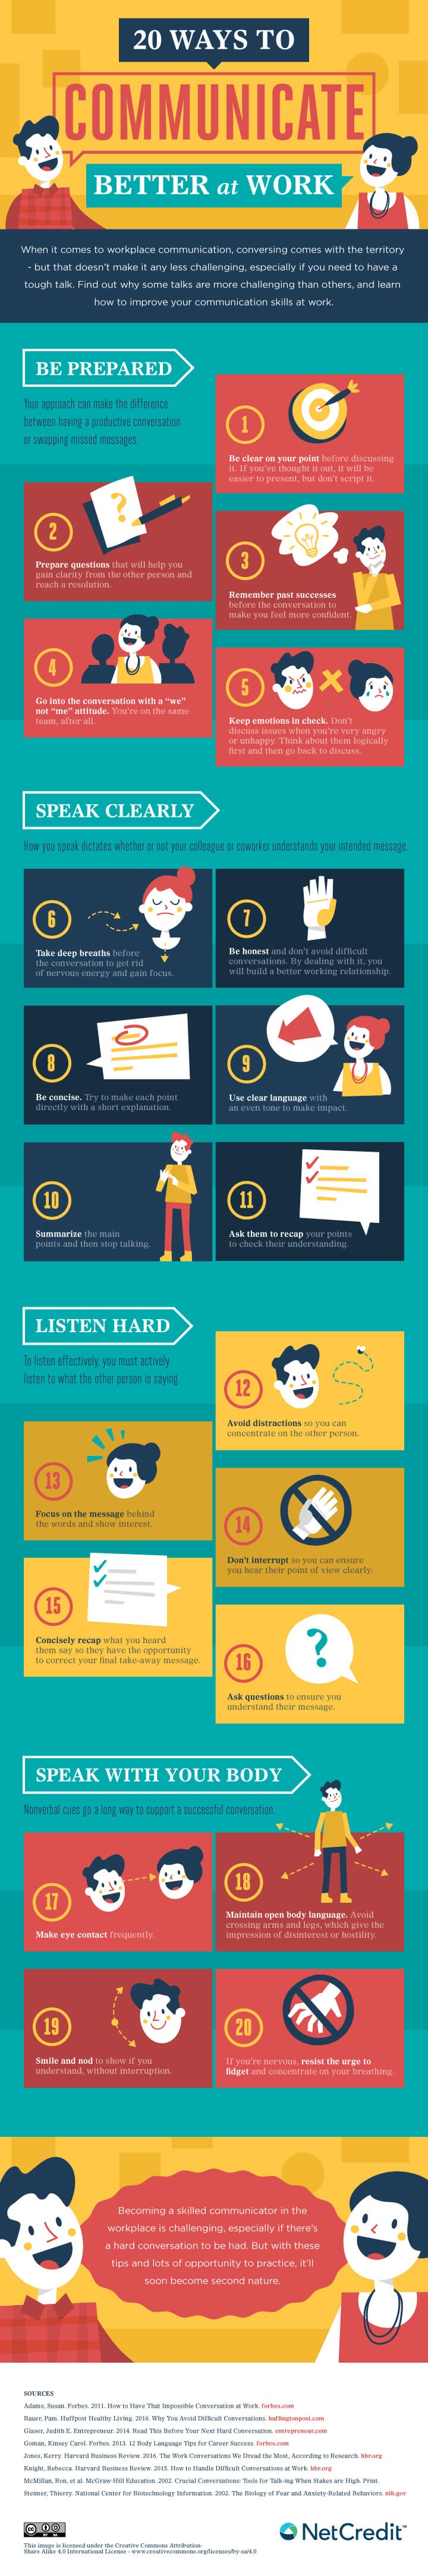 20 Ways to Communicate Better at Work - #infographic